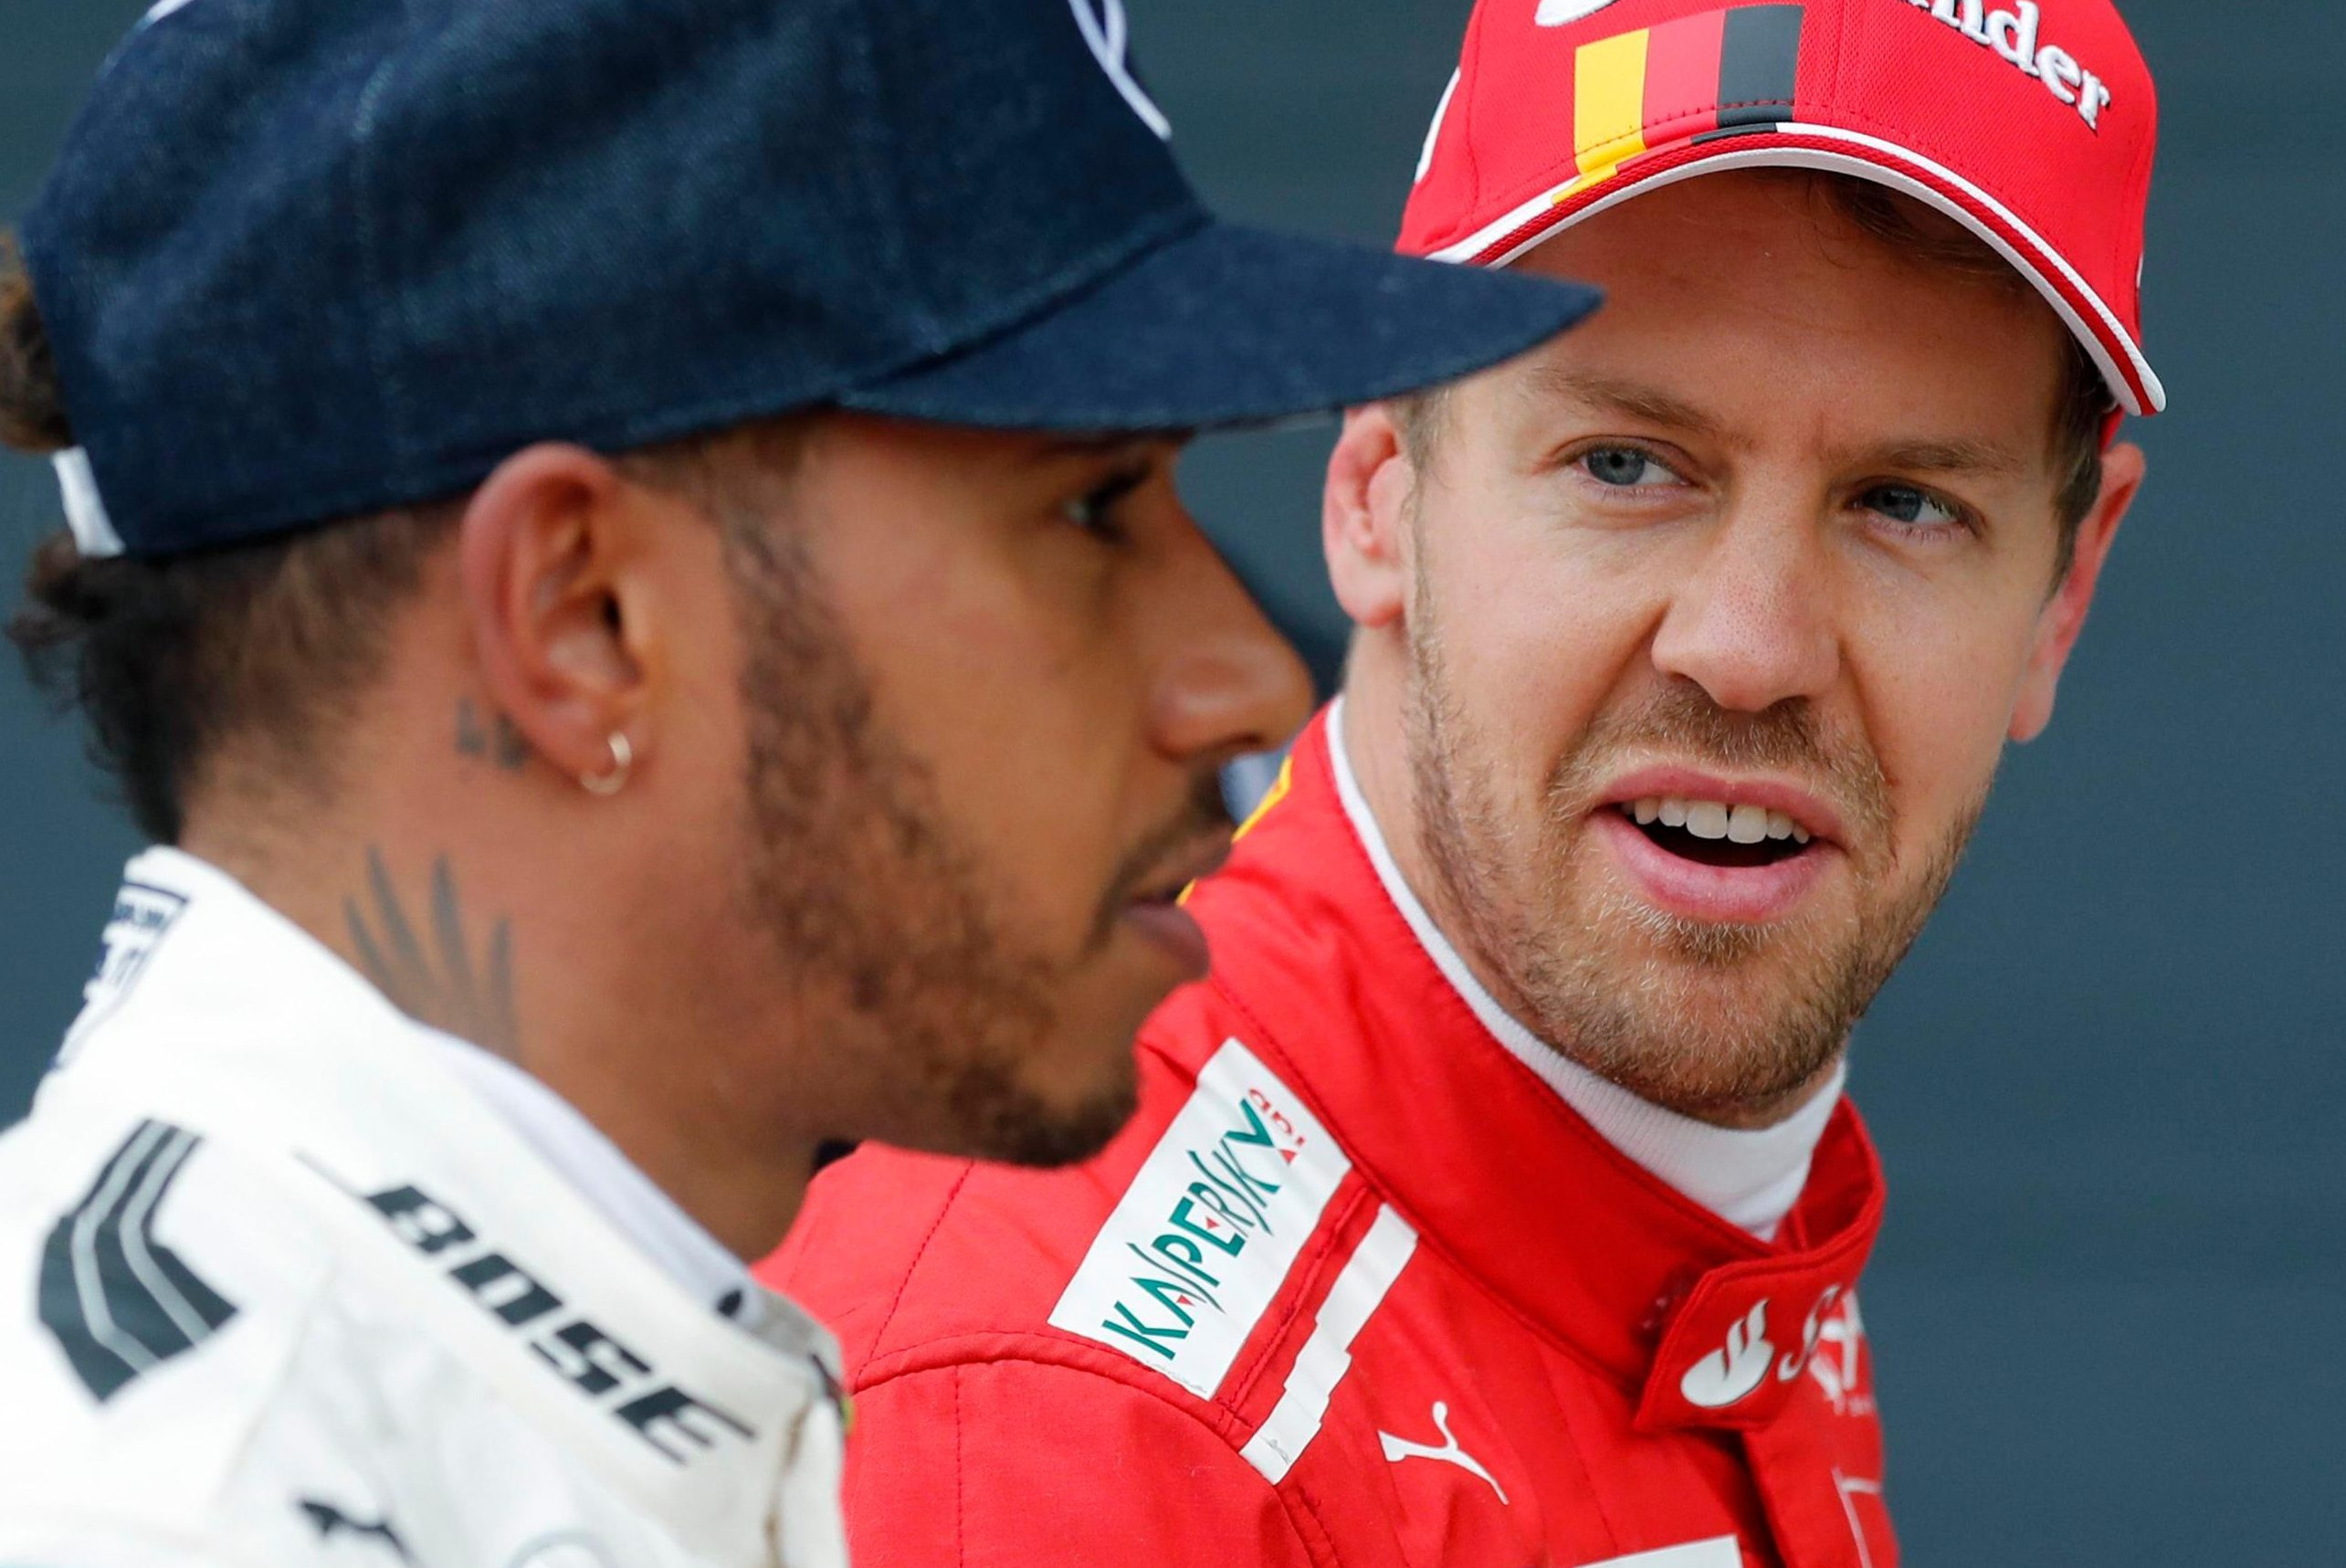 Lewis Hamilton will hope to outshine Sebastian Vettel again once the term starts